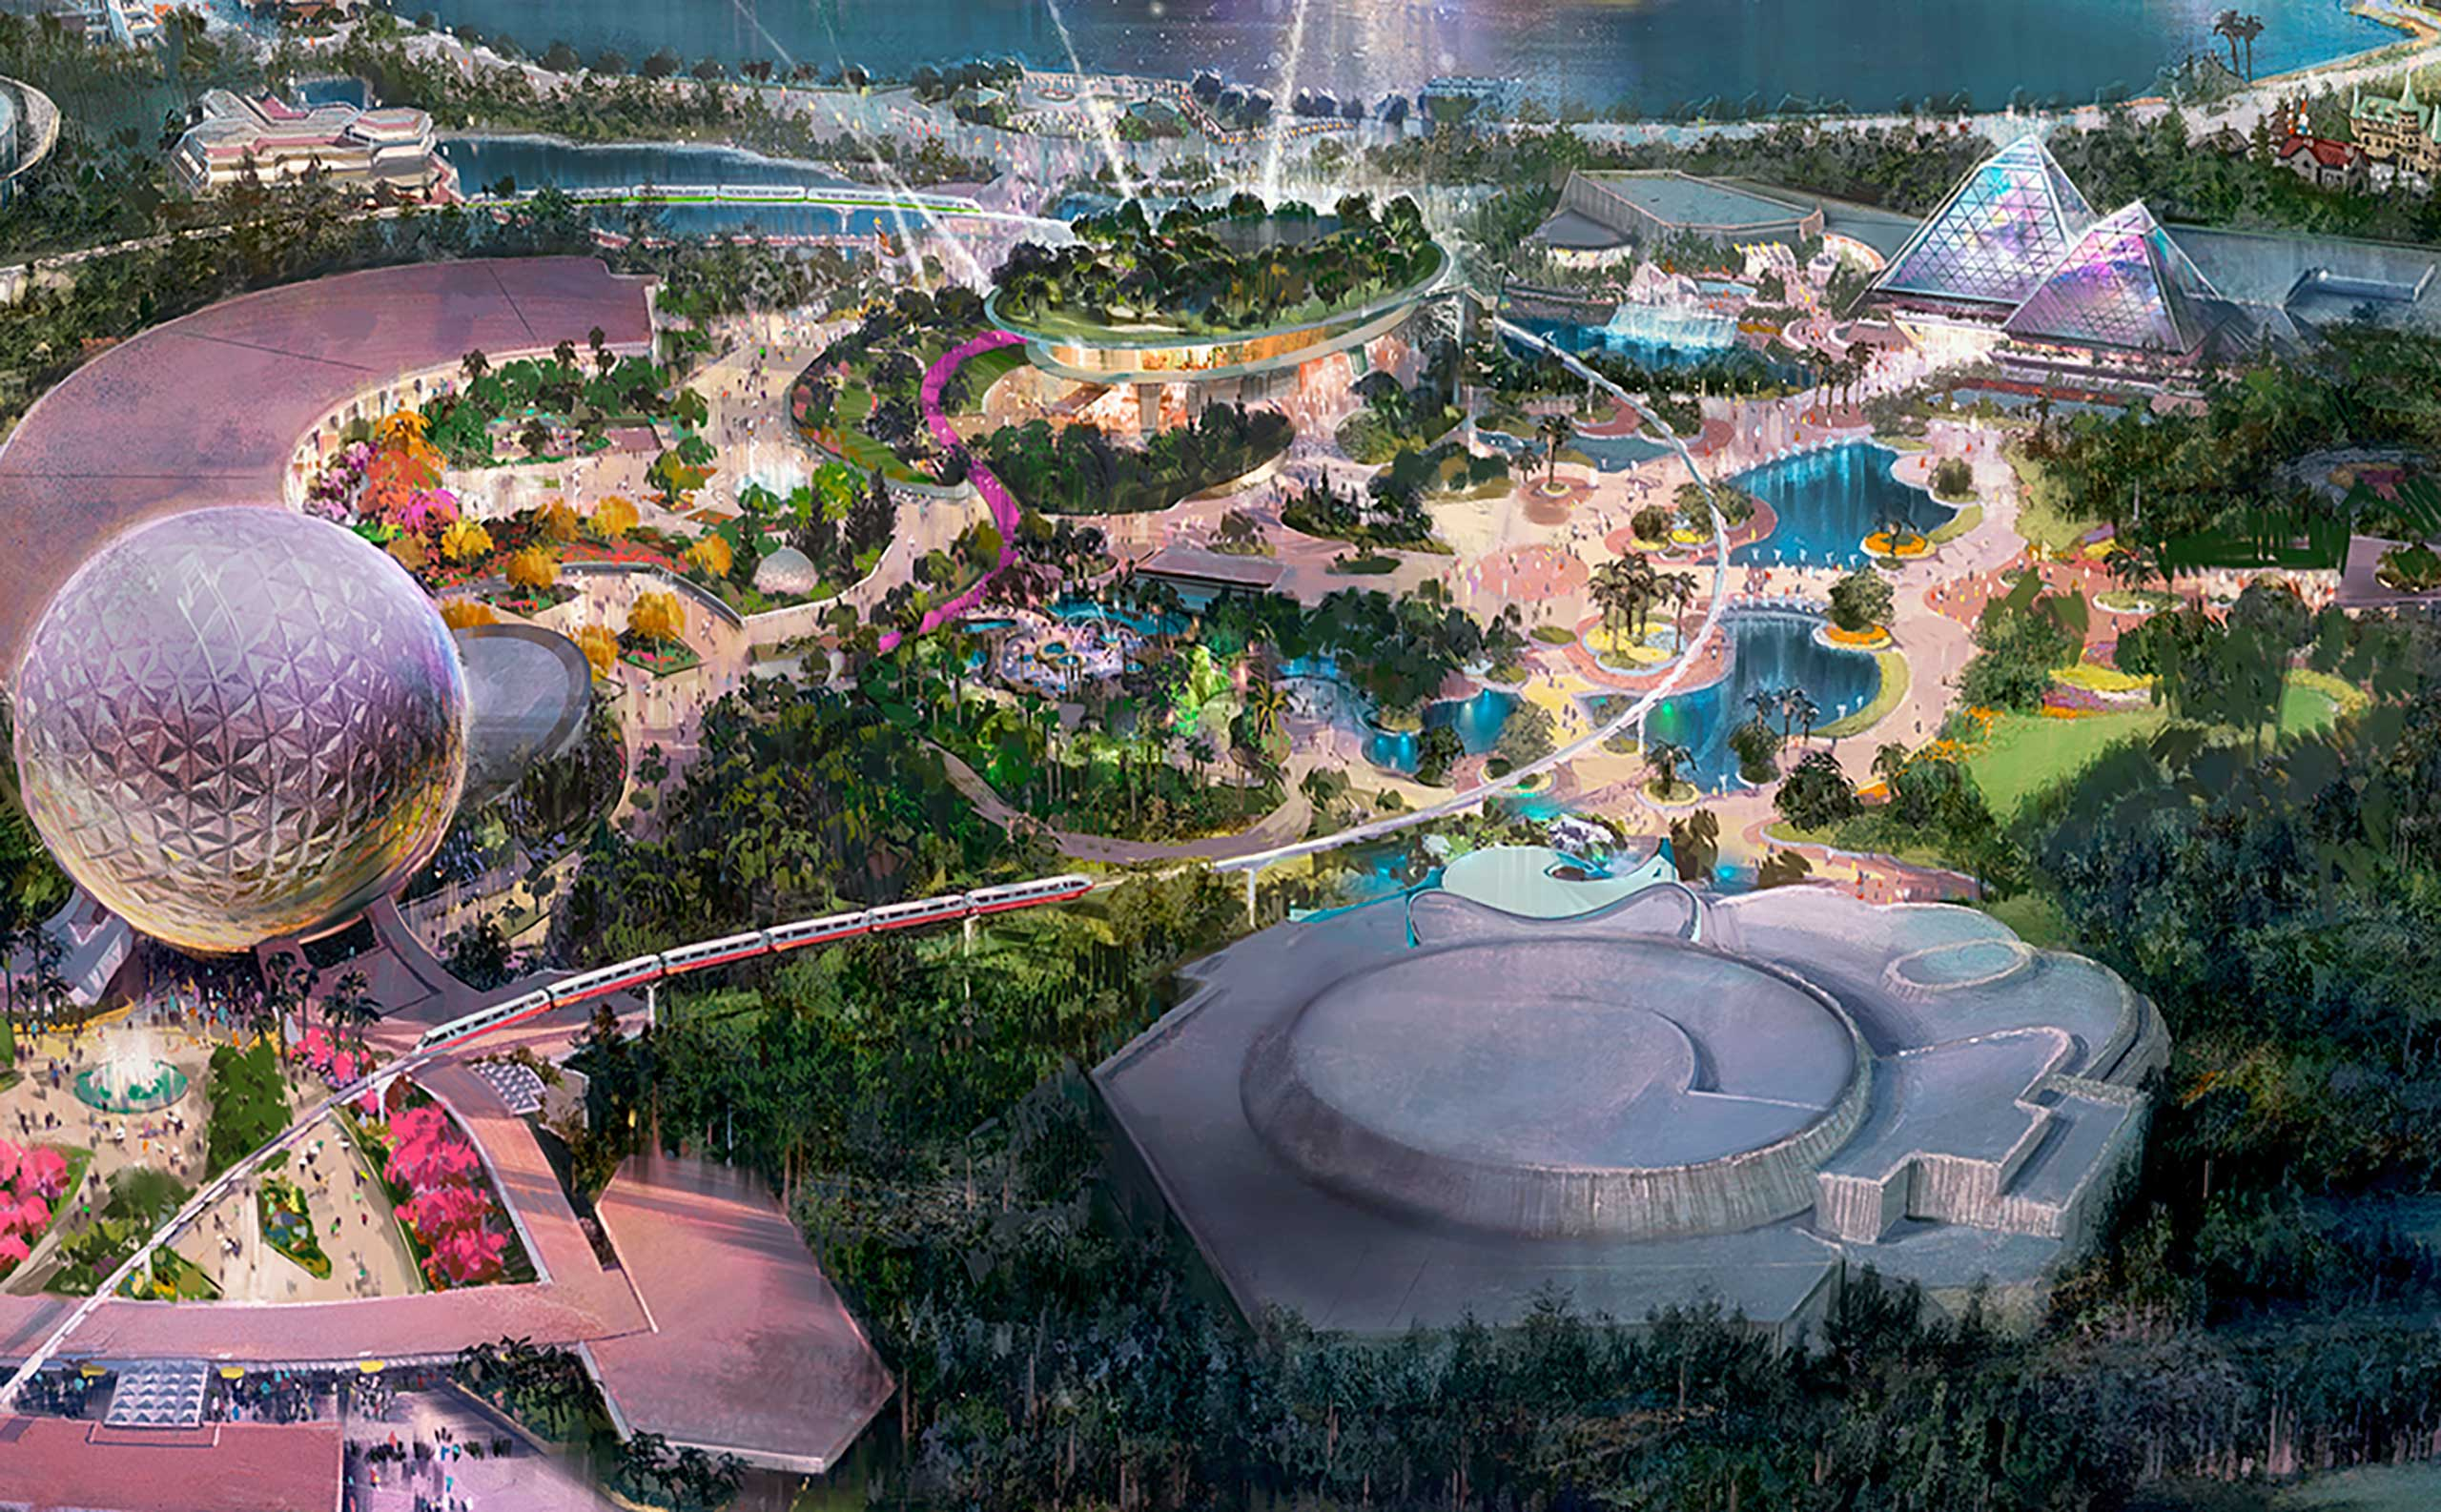 The Journey of Water will be built on some of the land currently occupied by Innoventions West